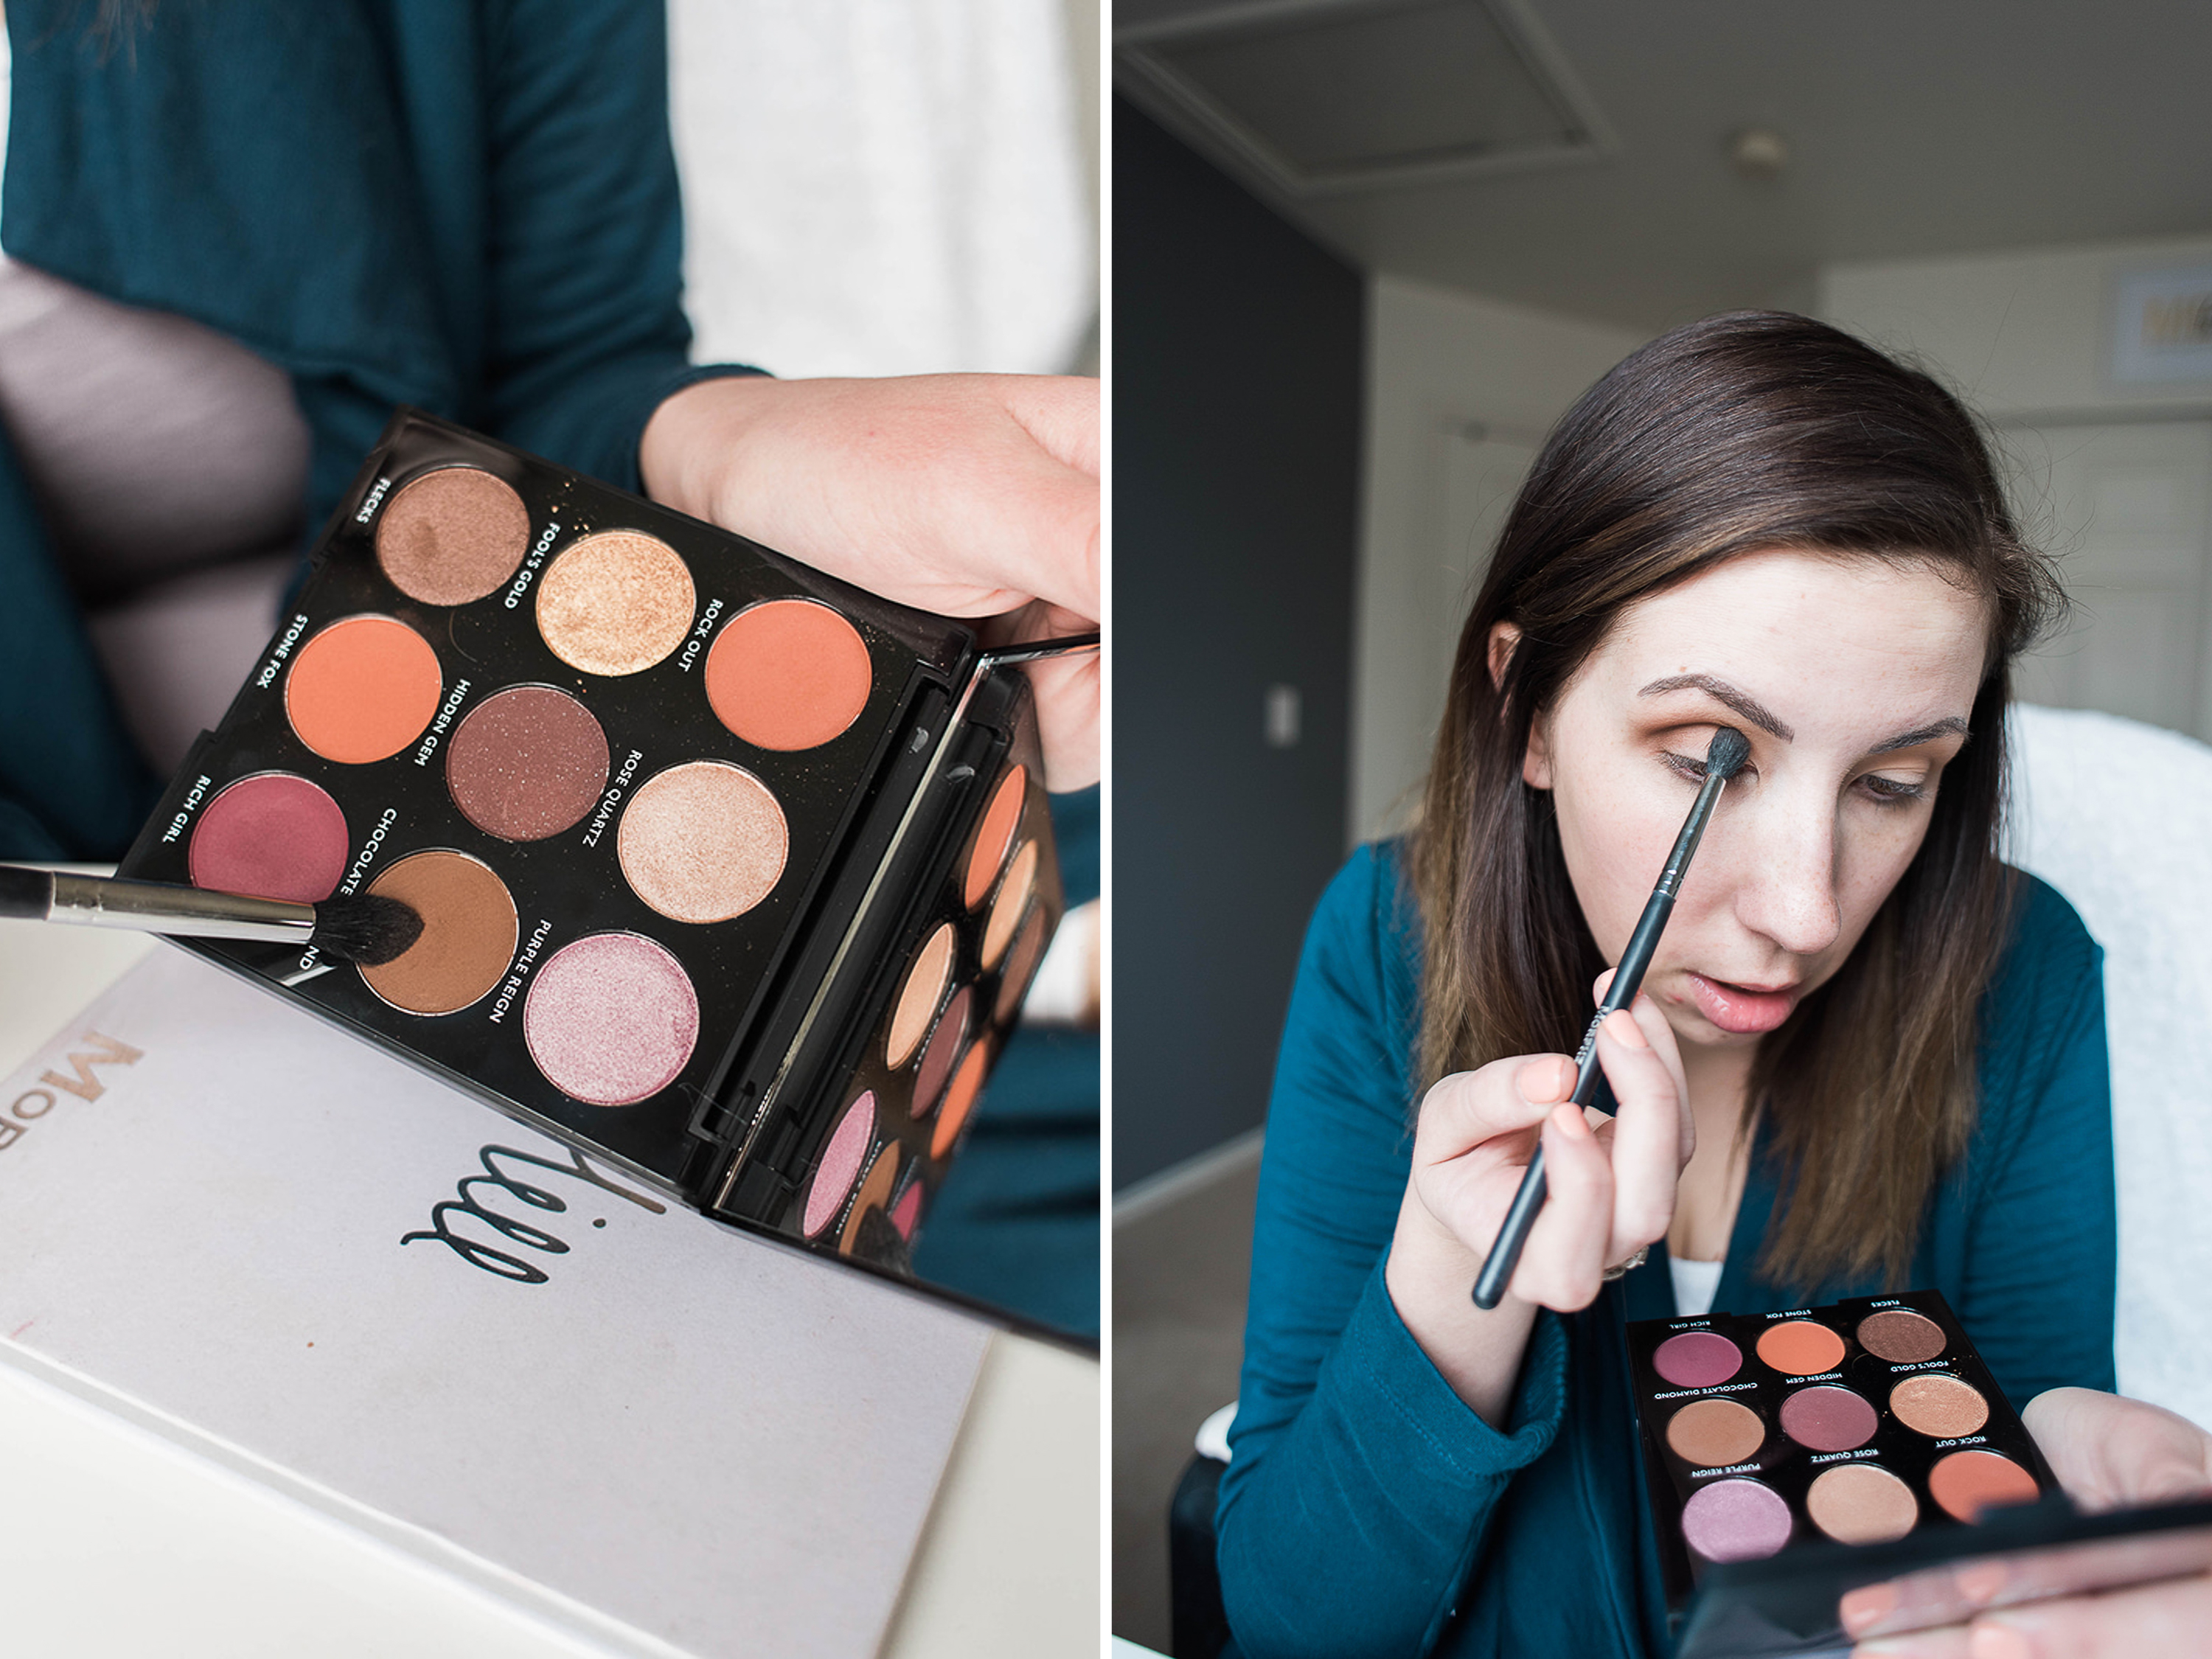 St Patrick's Day Makeup Tutorial - sharing a St. Patrick's Day easy eyeshadow tutorial featuring the Morphe Jewel Tone Palette from Ulta // Hey There, Chelsie